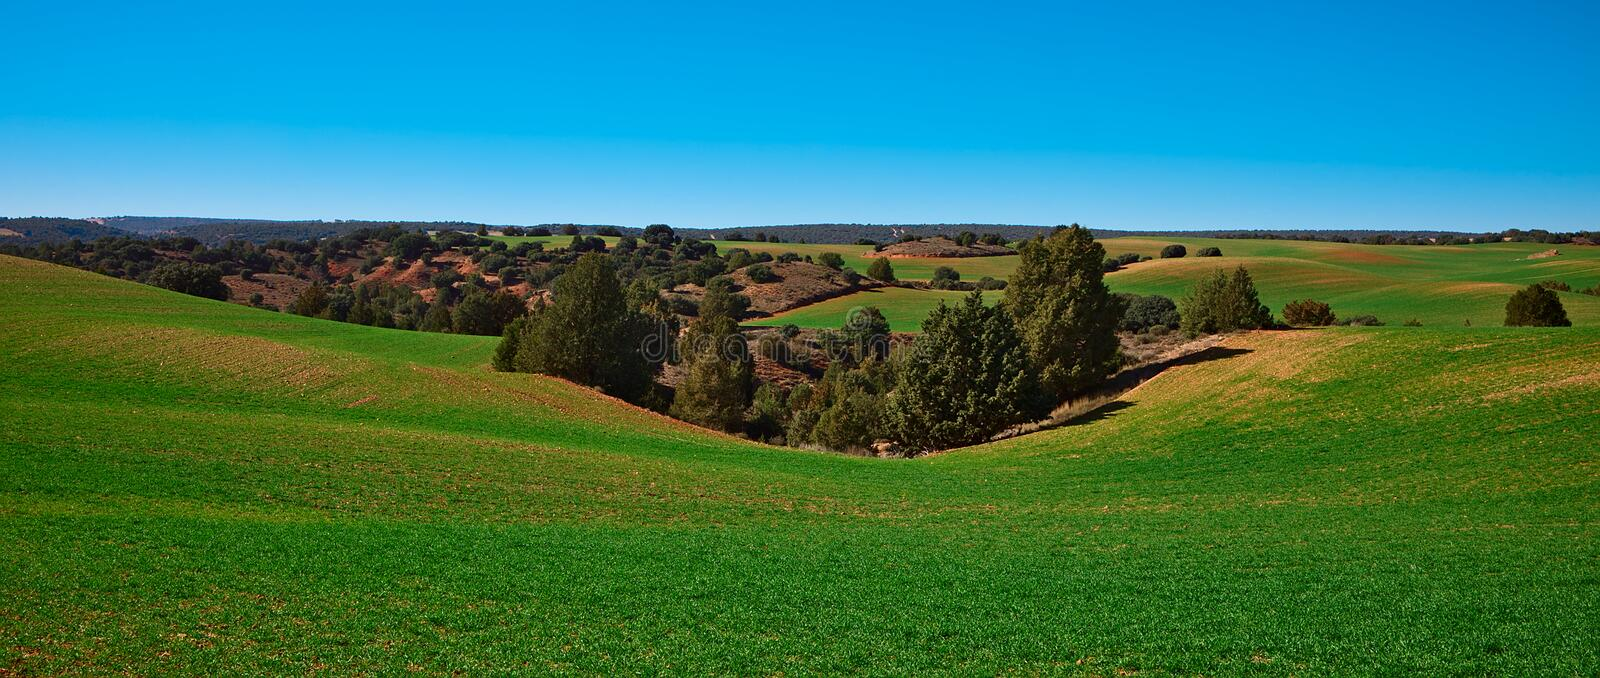 Landscape of meadows and trees on a sunny day royalty free stock images